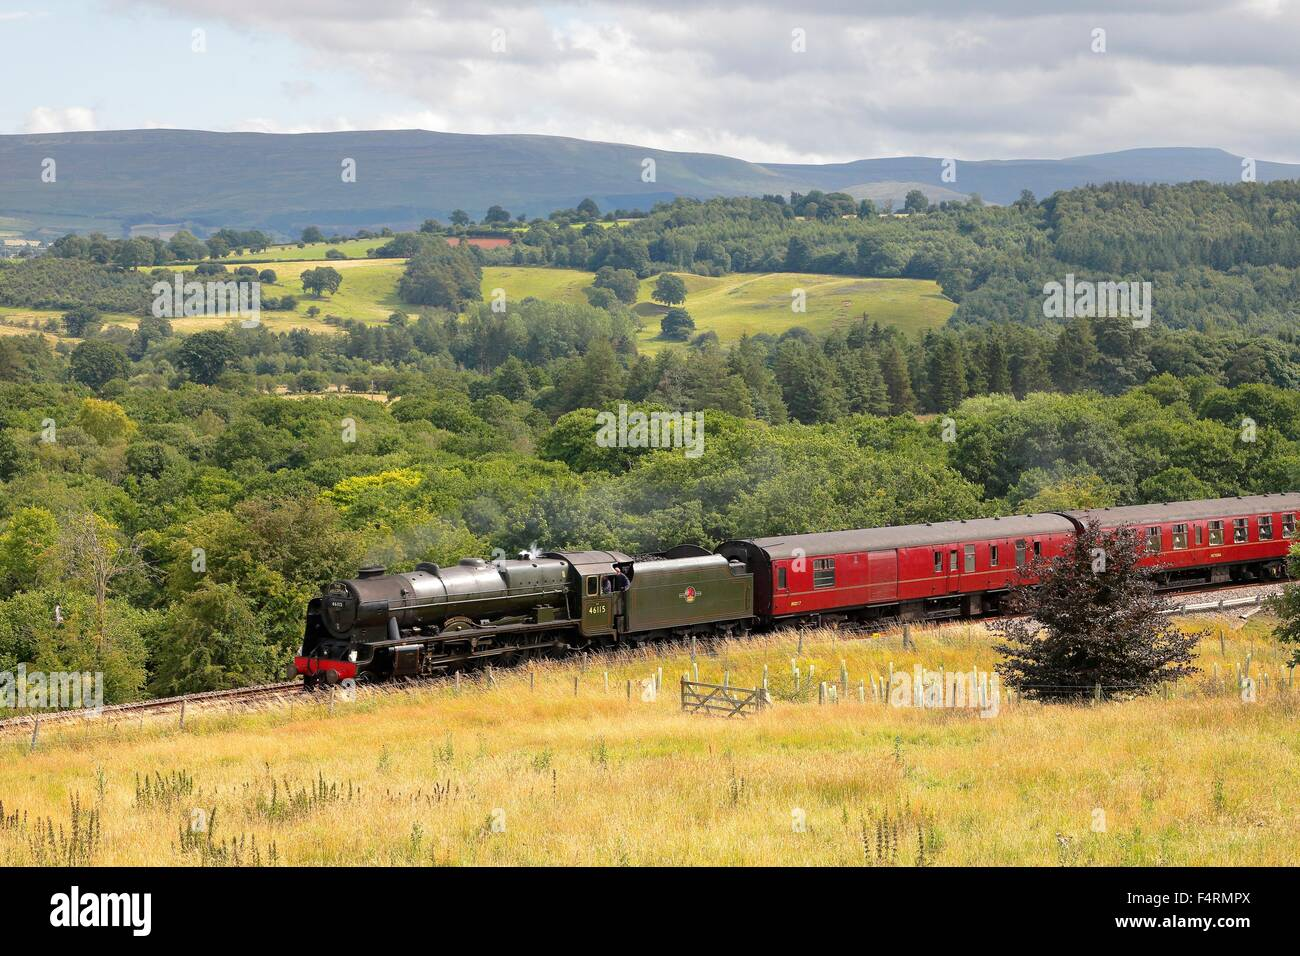 Steam train LMS Royal Scot Class 46115 Scots Guardsman on the Settle to Carlisle Railway Line near Lazonby, Eden Stock Photo